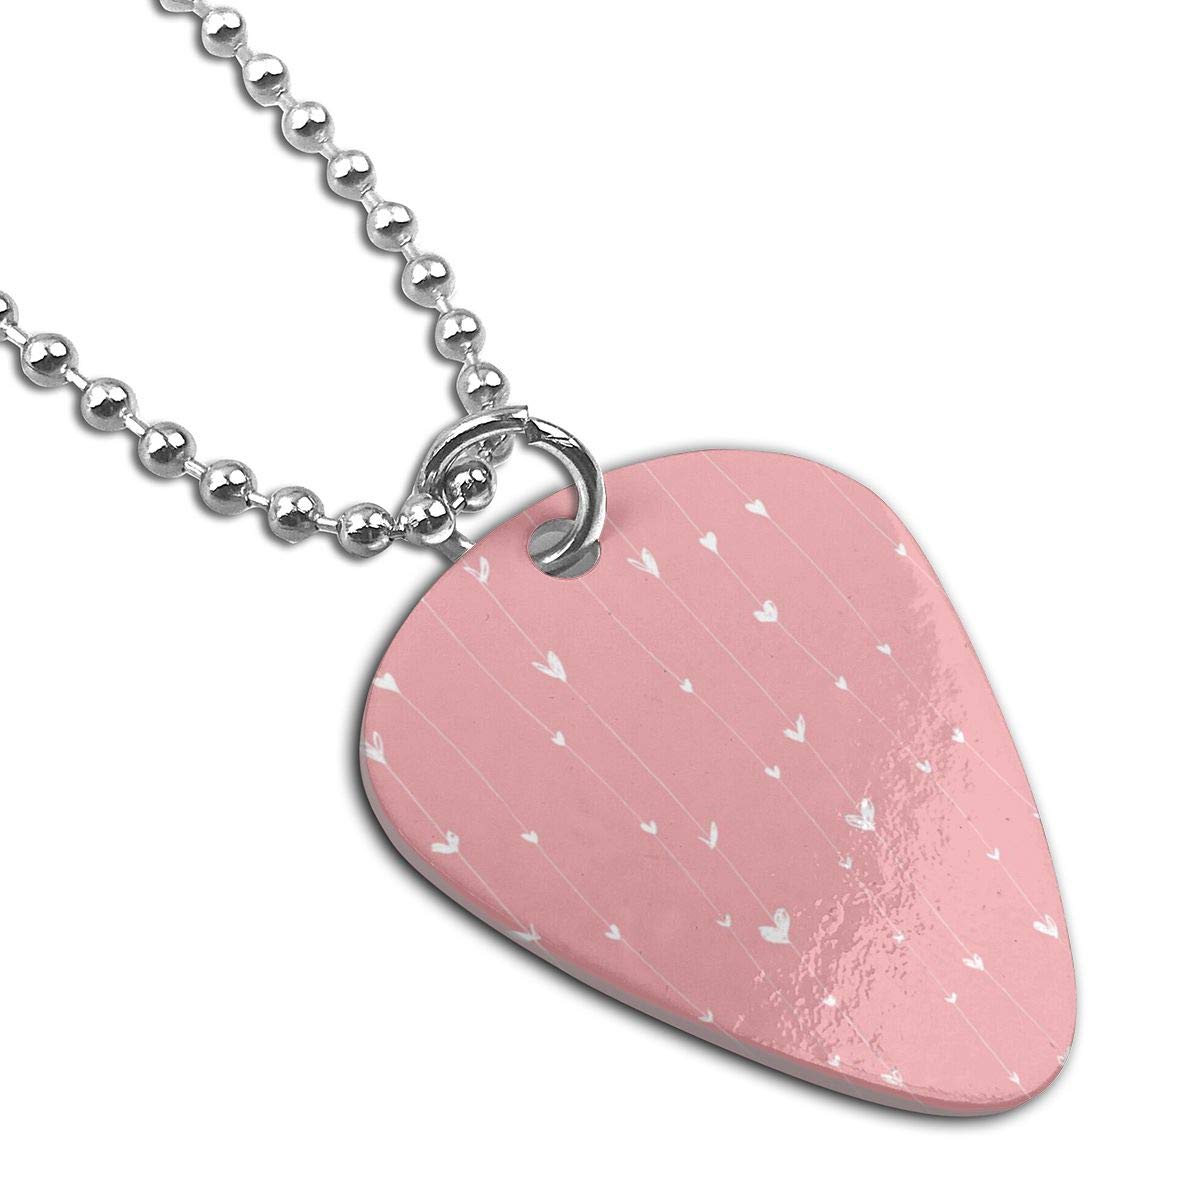 Sheery Love Dog Tag Pendant With Guitar Bassiform